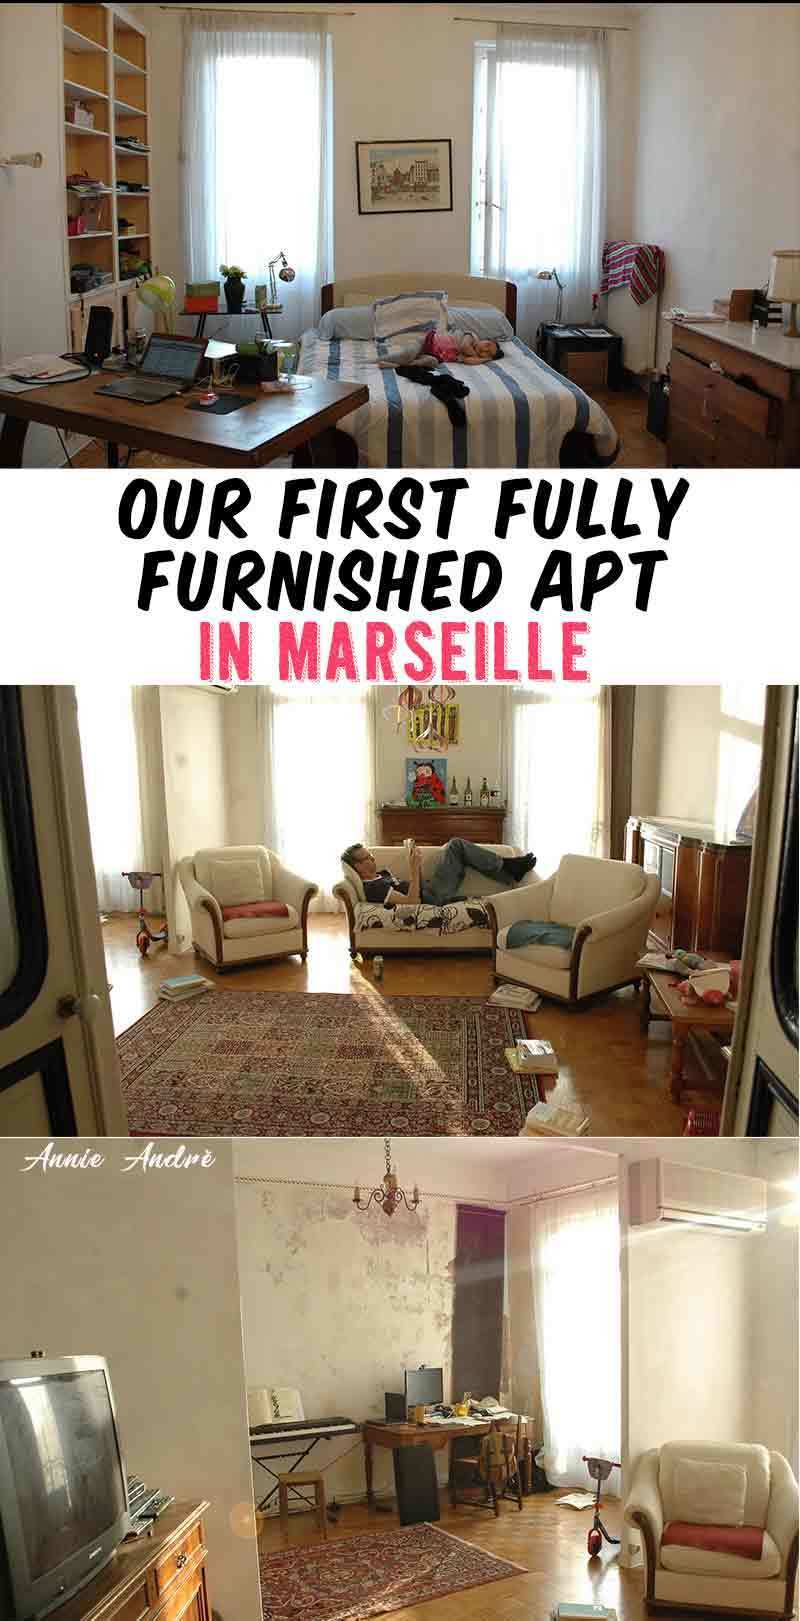 Our first fully furnished apartment in Marseille France was a little worn down